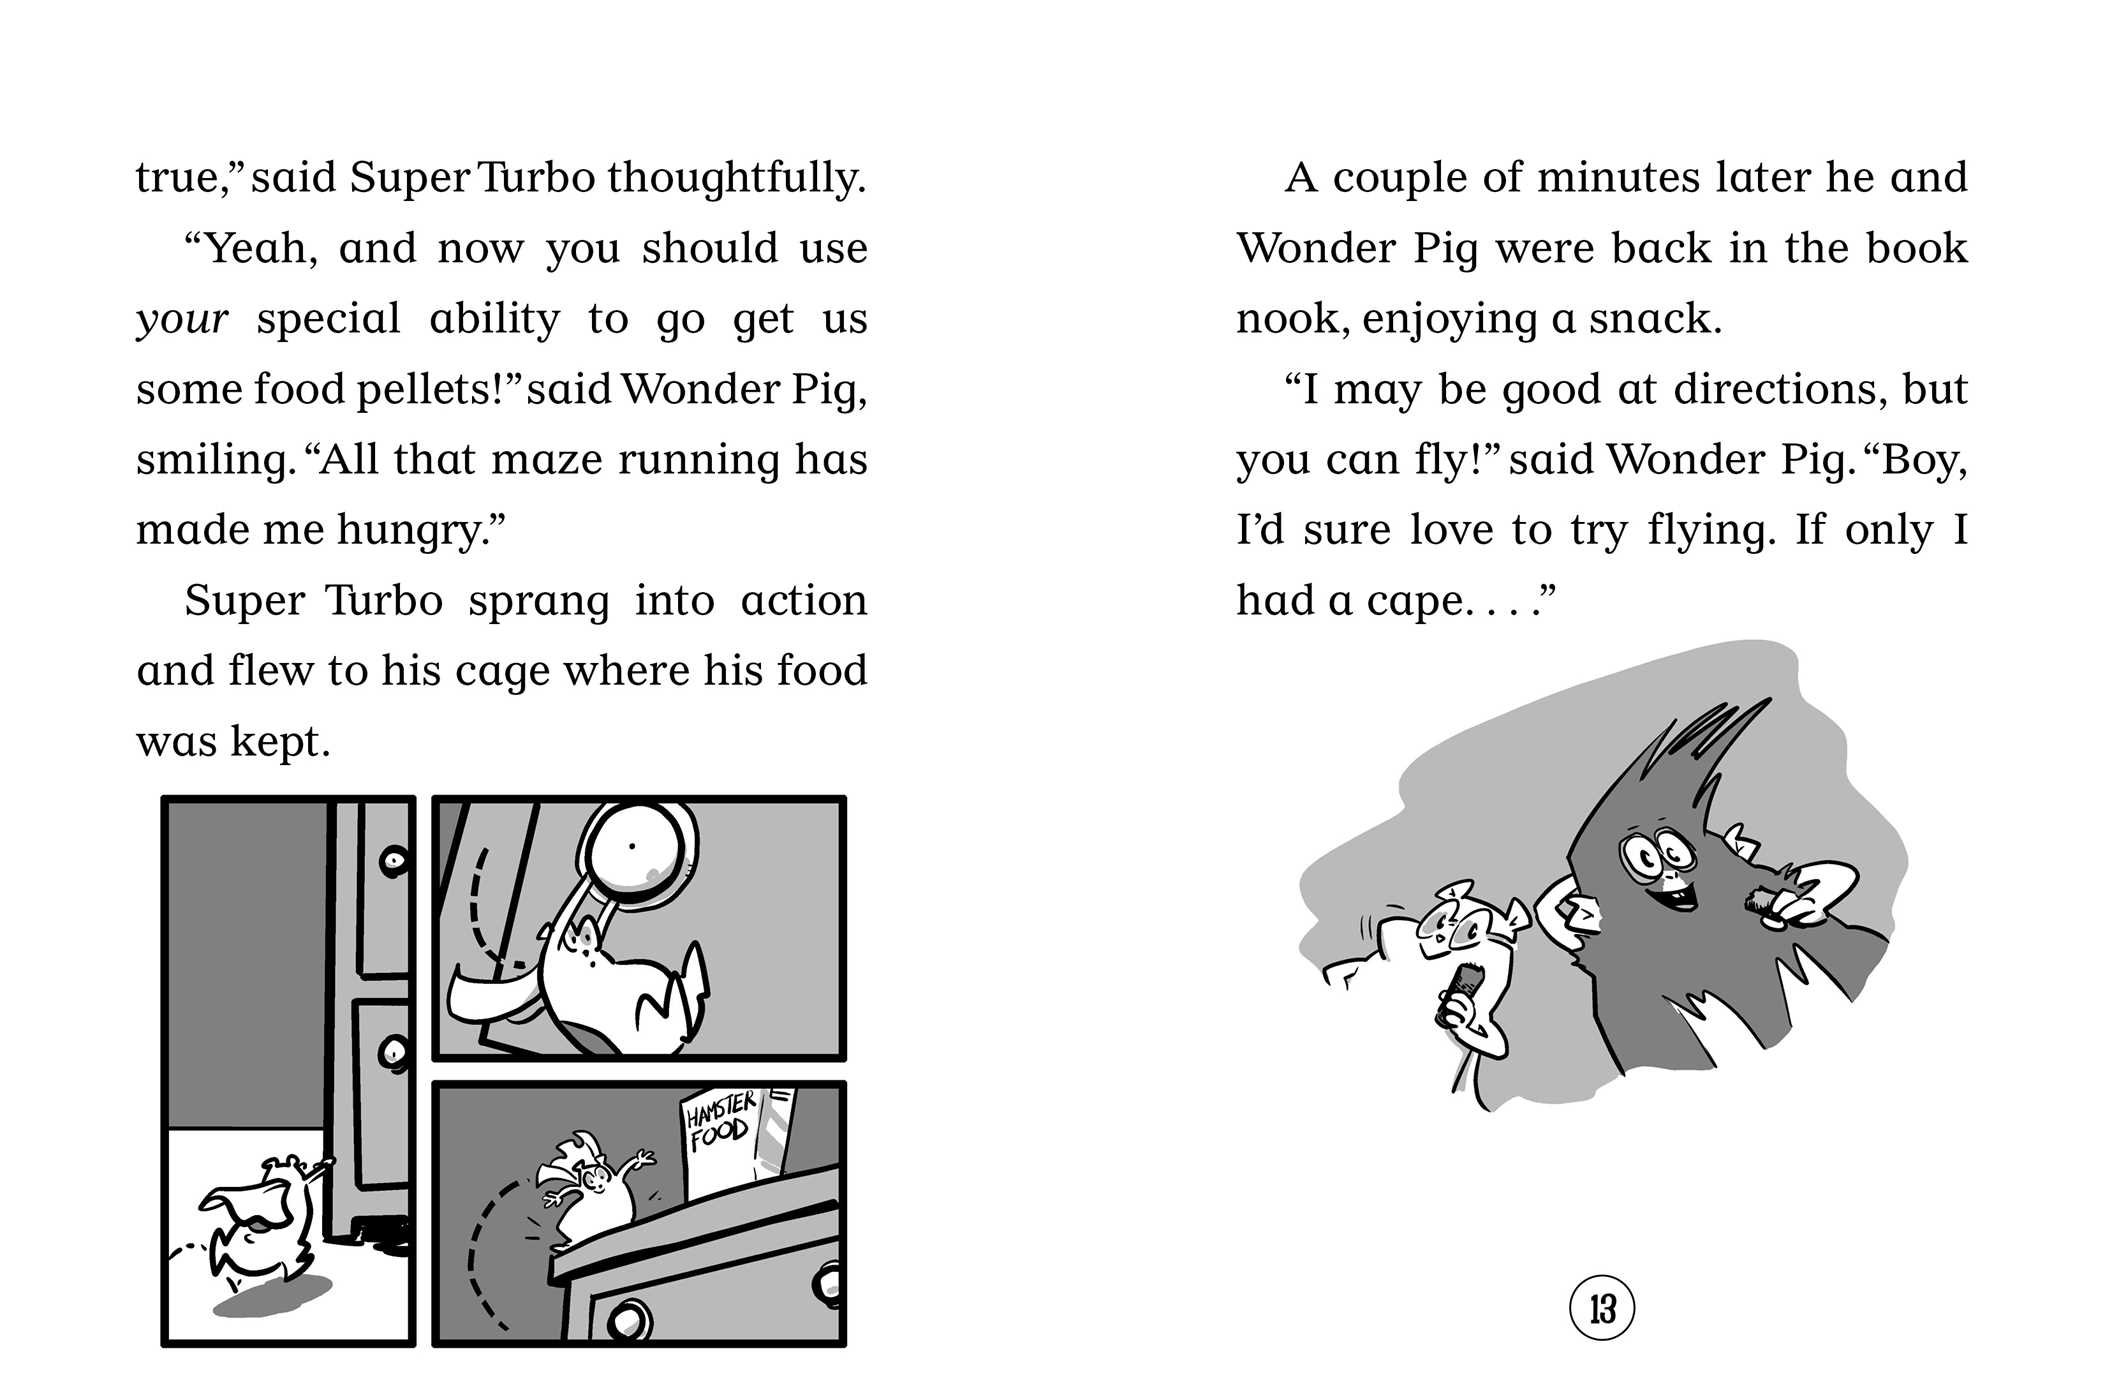 Amazon.com: Super Turbo vs. Wonder Pig (9781534411814): Lee Kirby, George OConnor: Books